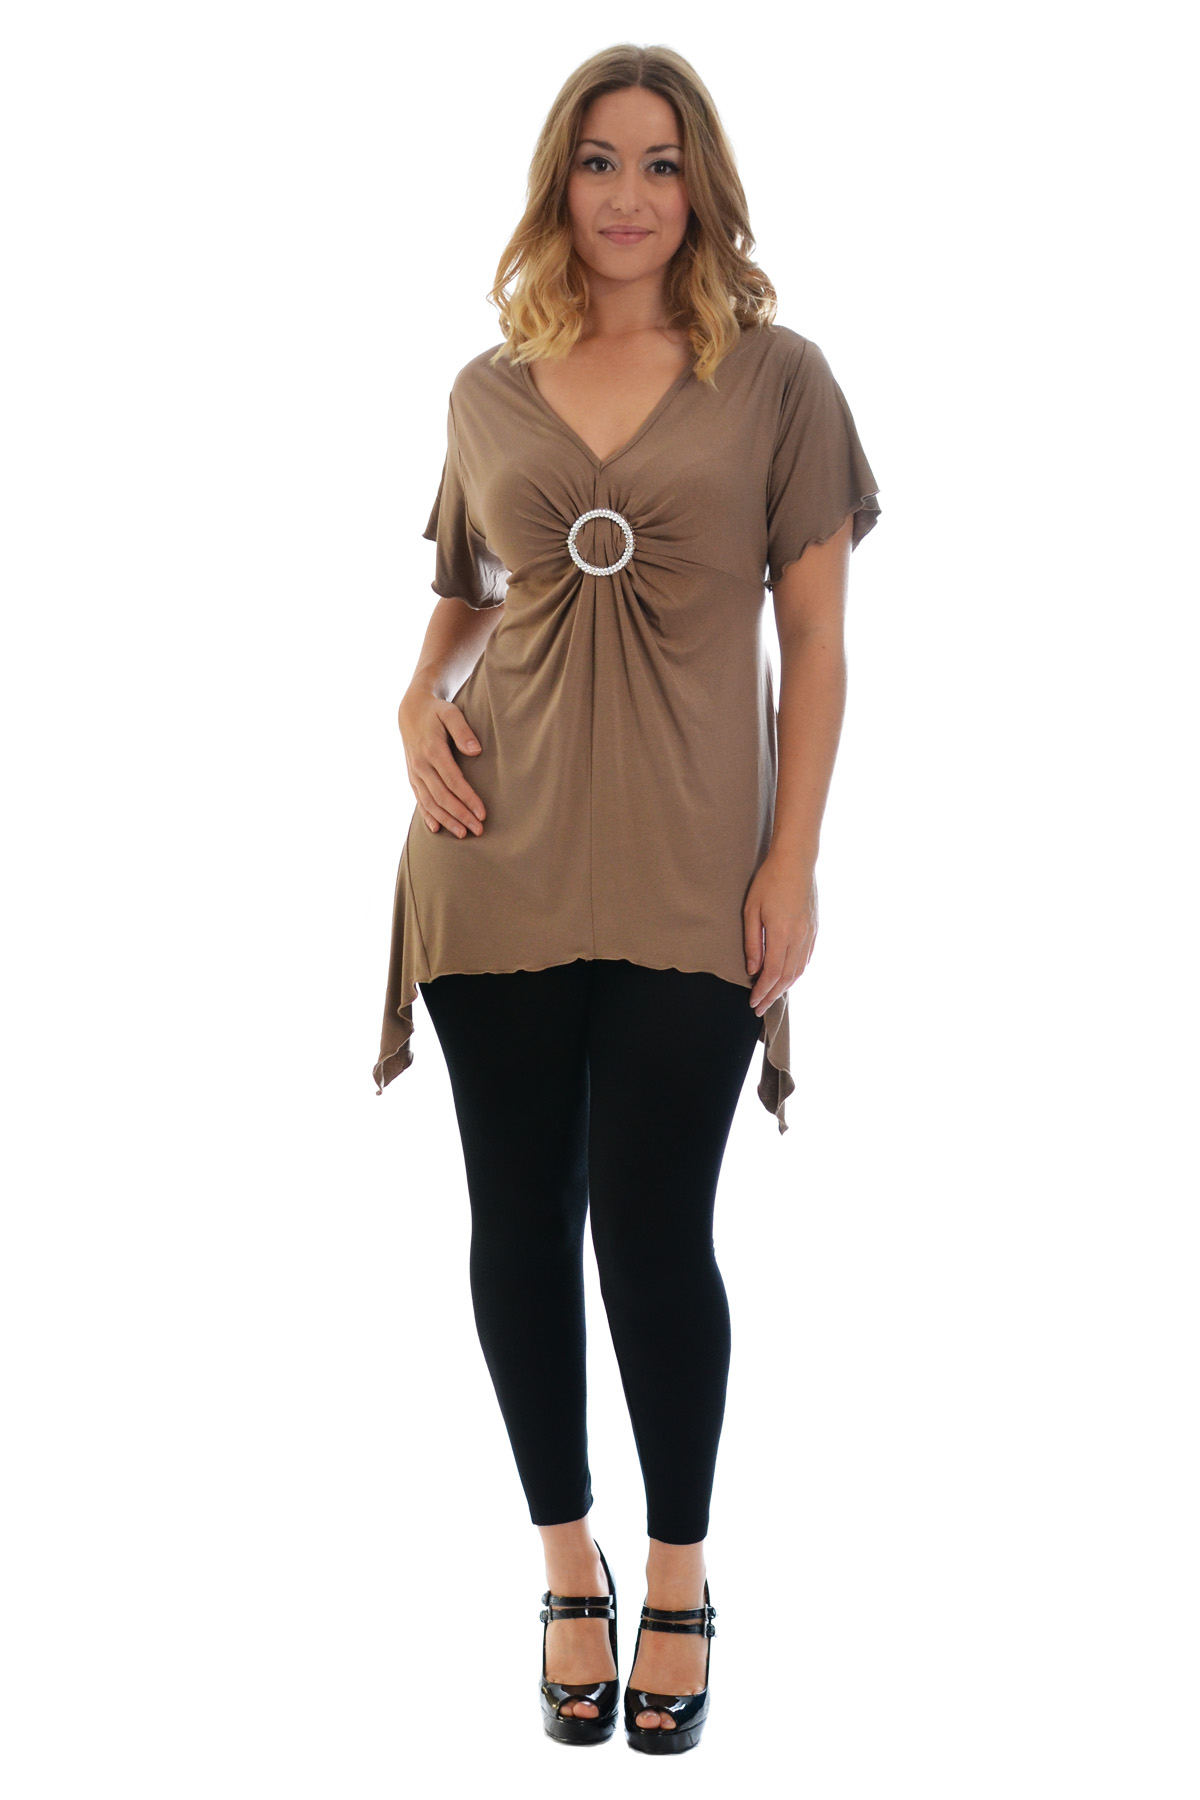 New-Womens-Plus-Size-Top-Ladies-T-Shirt-Buckle-Stud-A-Line-Asymmetric-Nouvelle thumbnail 17